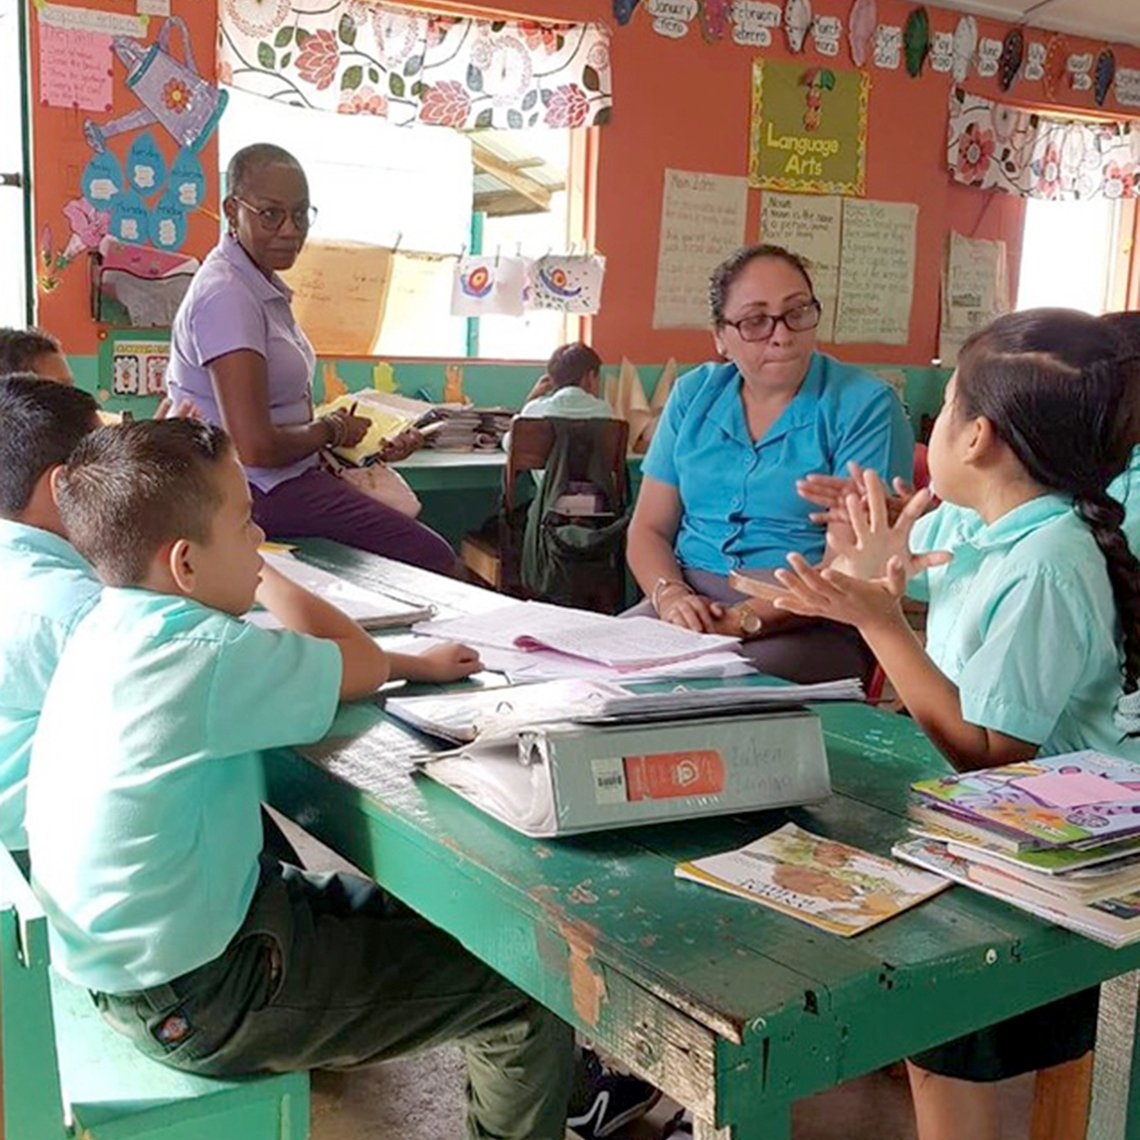 judith jones and another volunteer teaching children in a classroom while in the peace corps